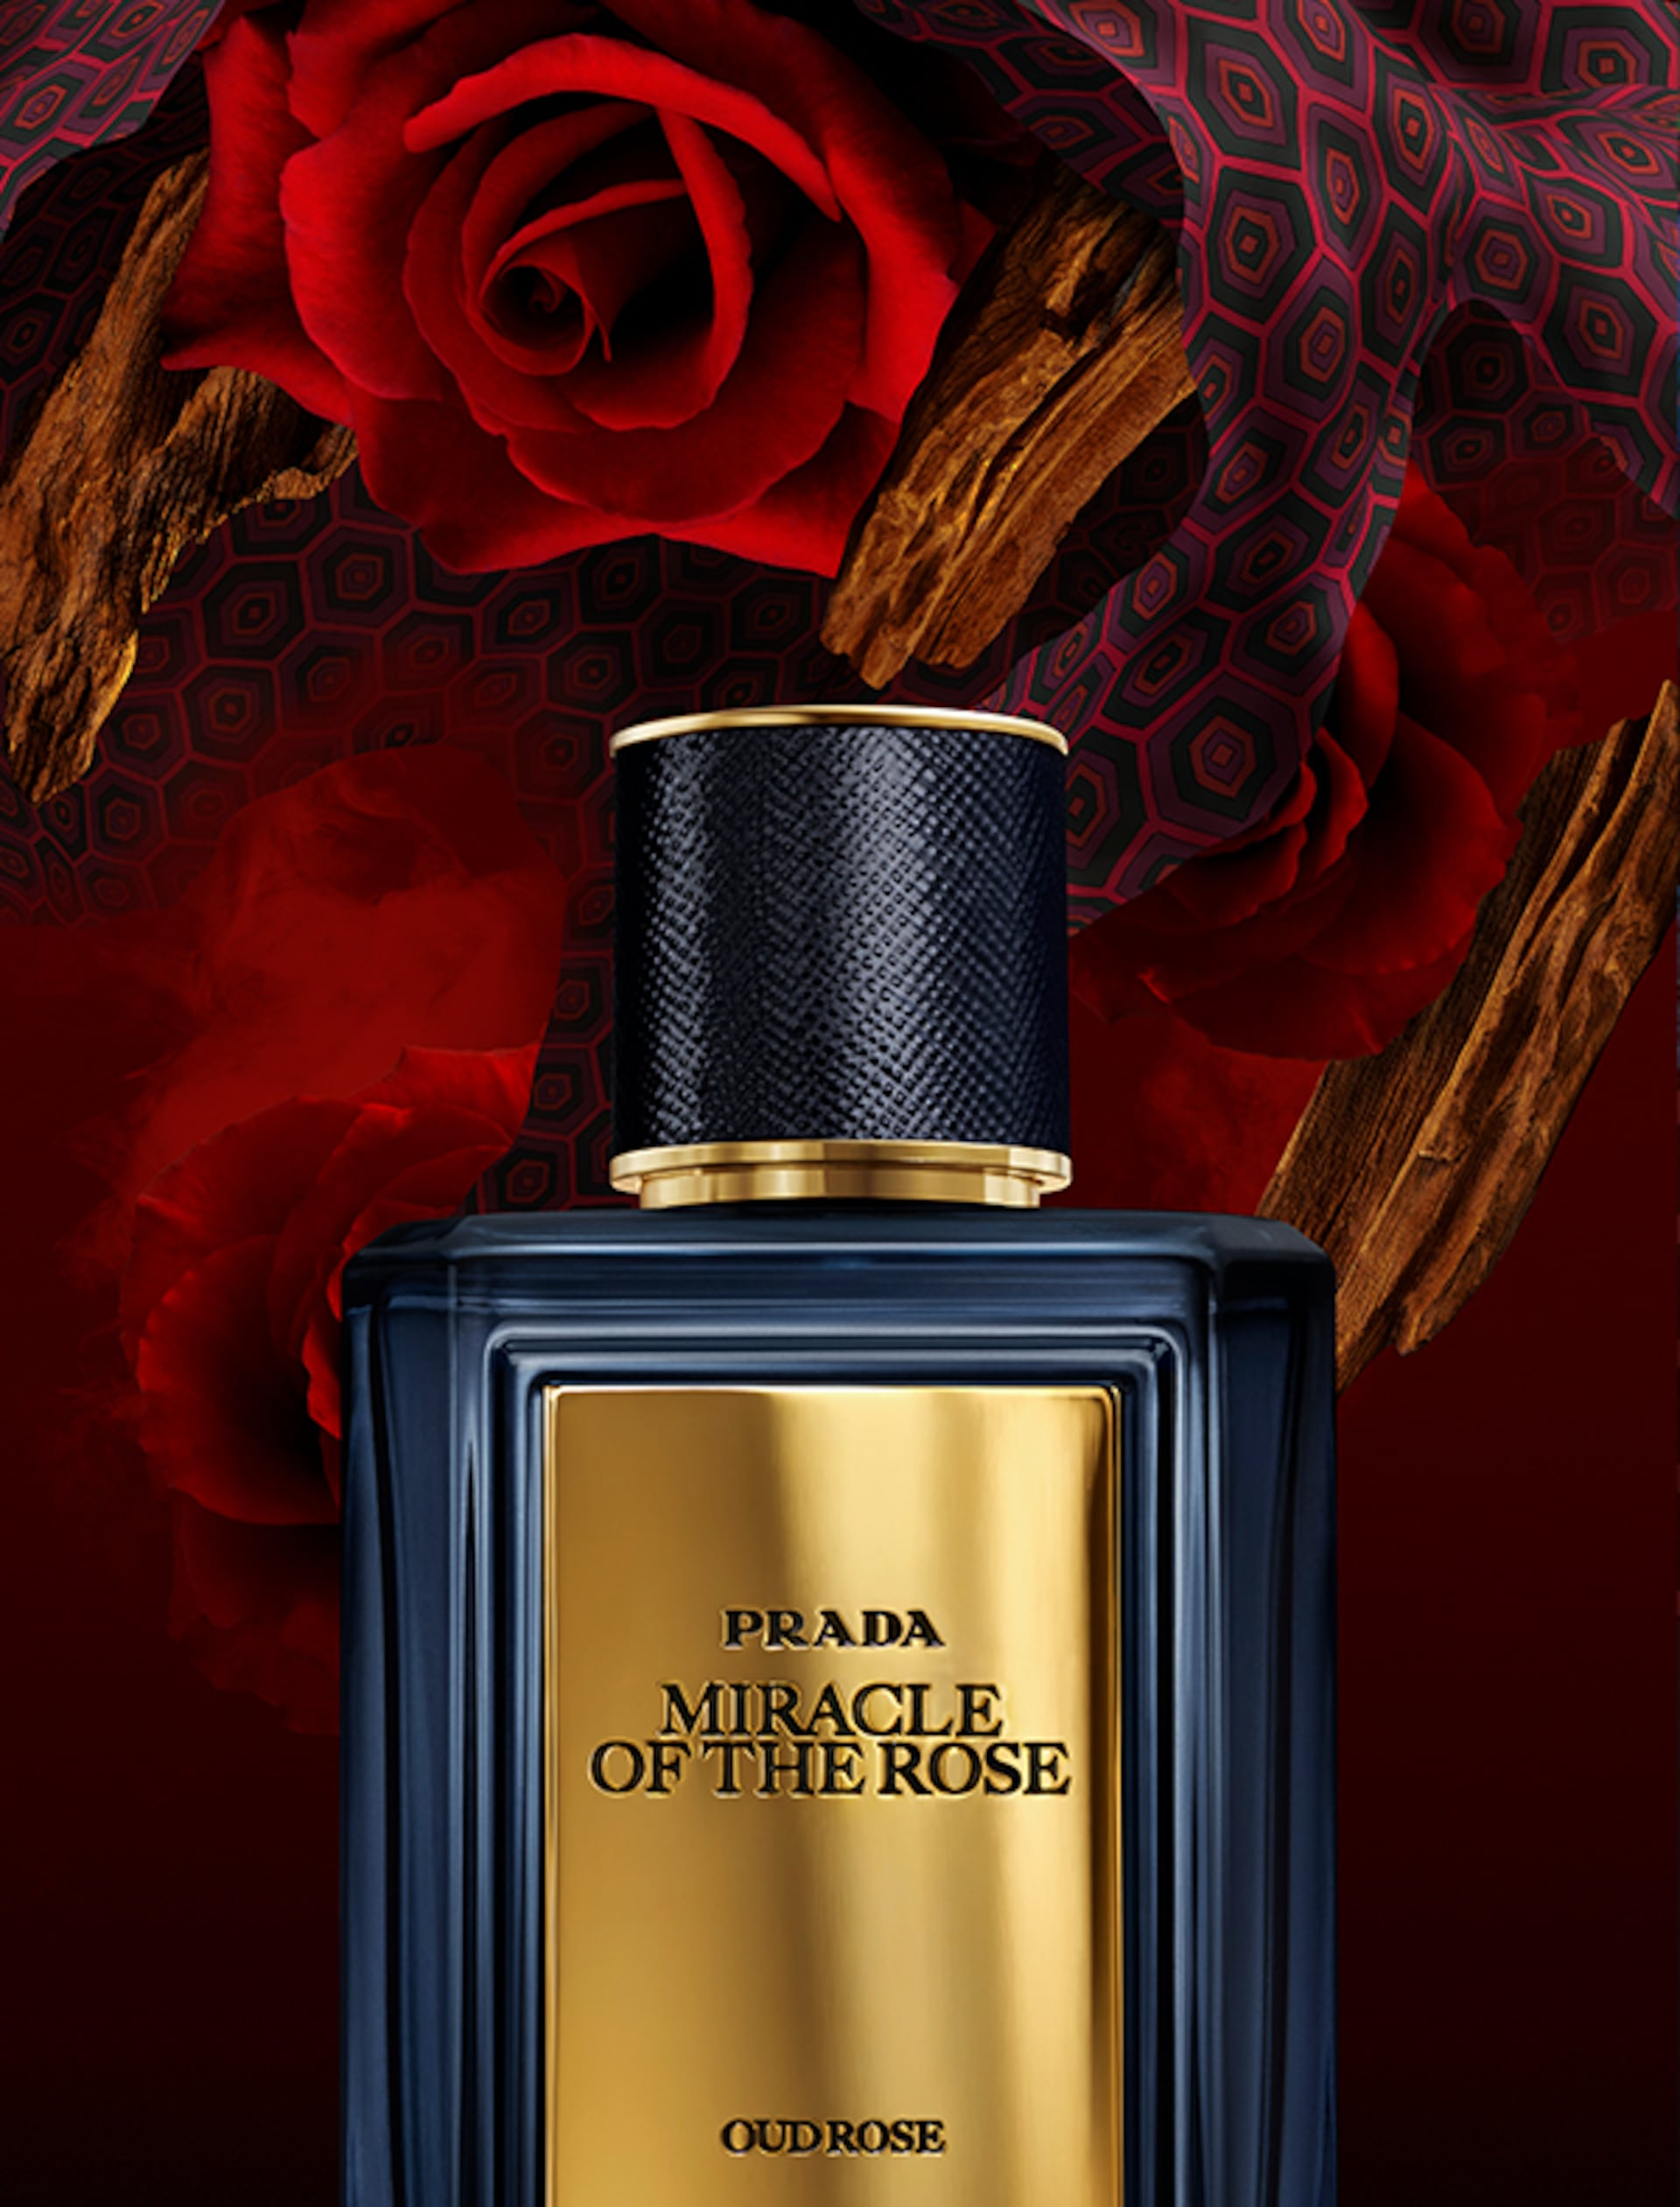 Prada Miracle of the Rose fragrance graphics